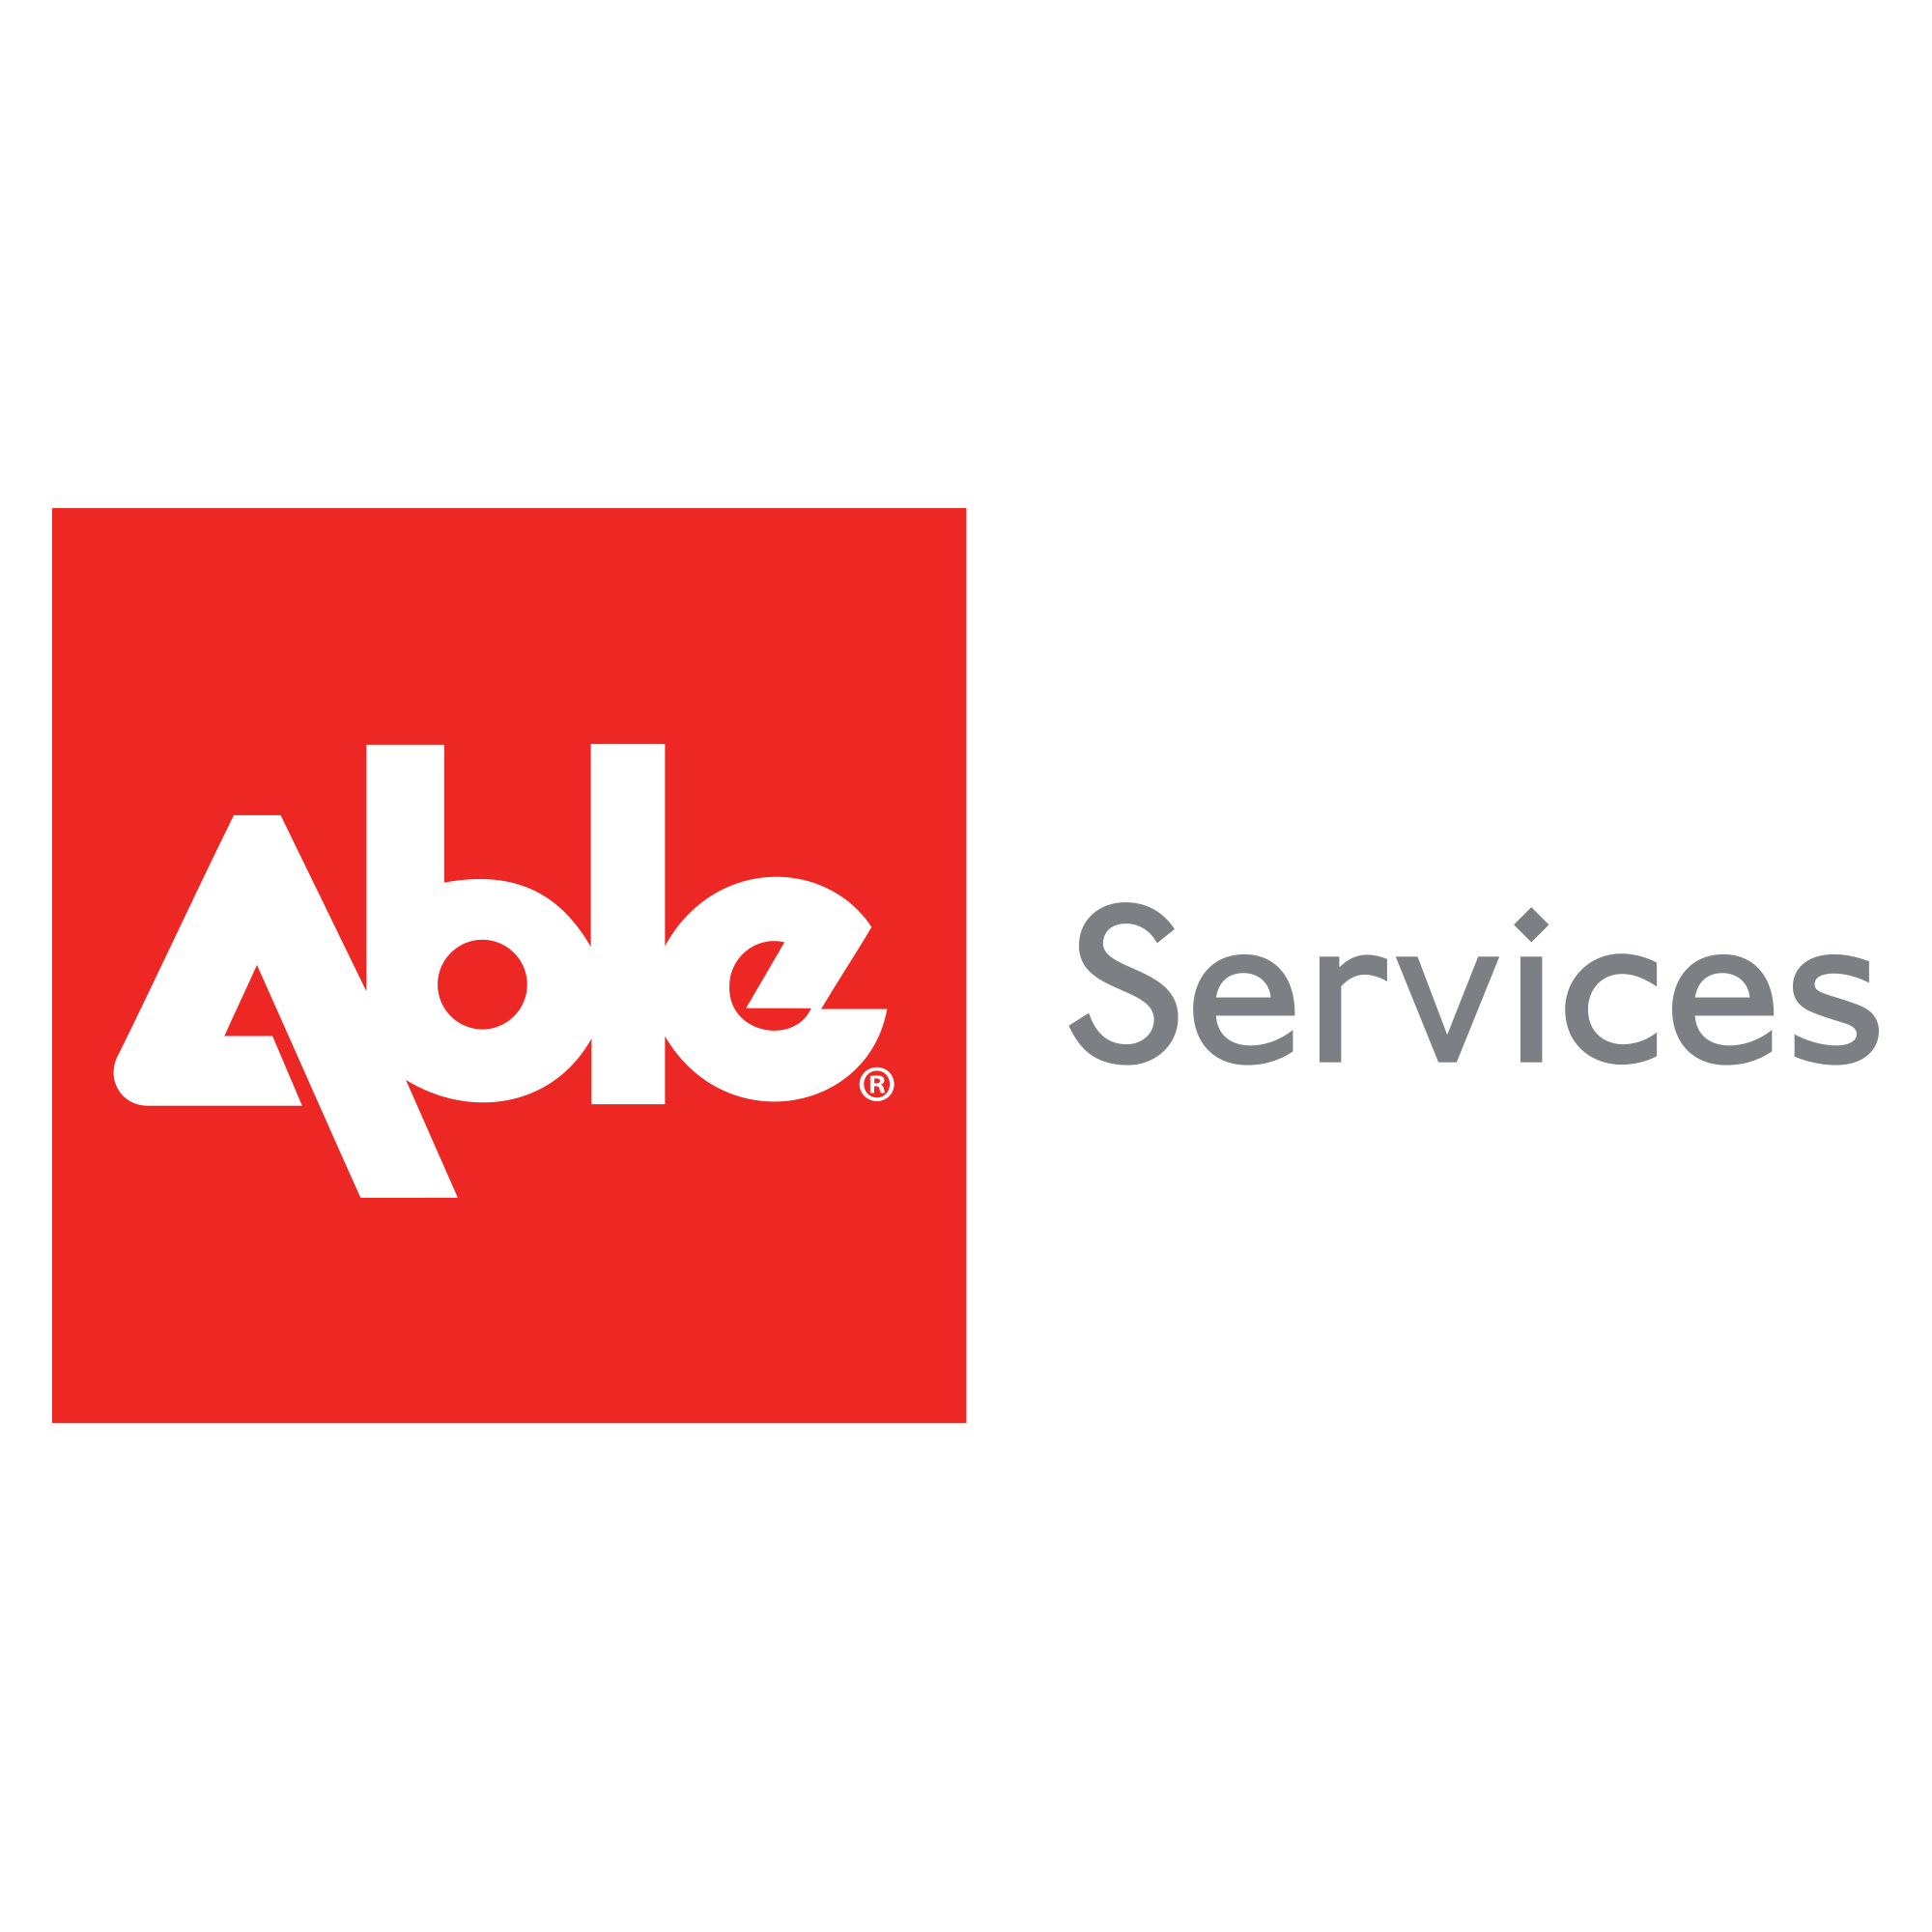 Able Services